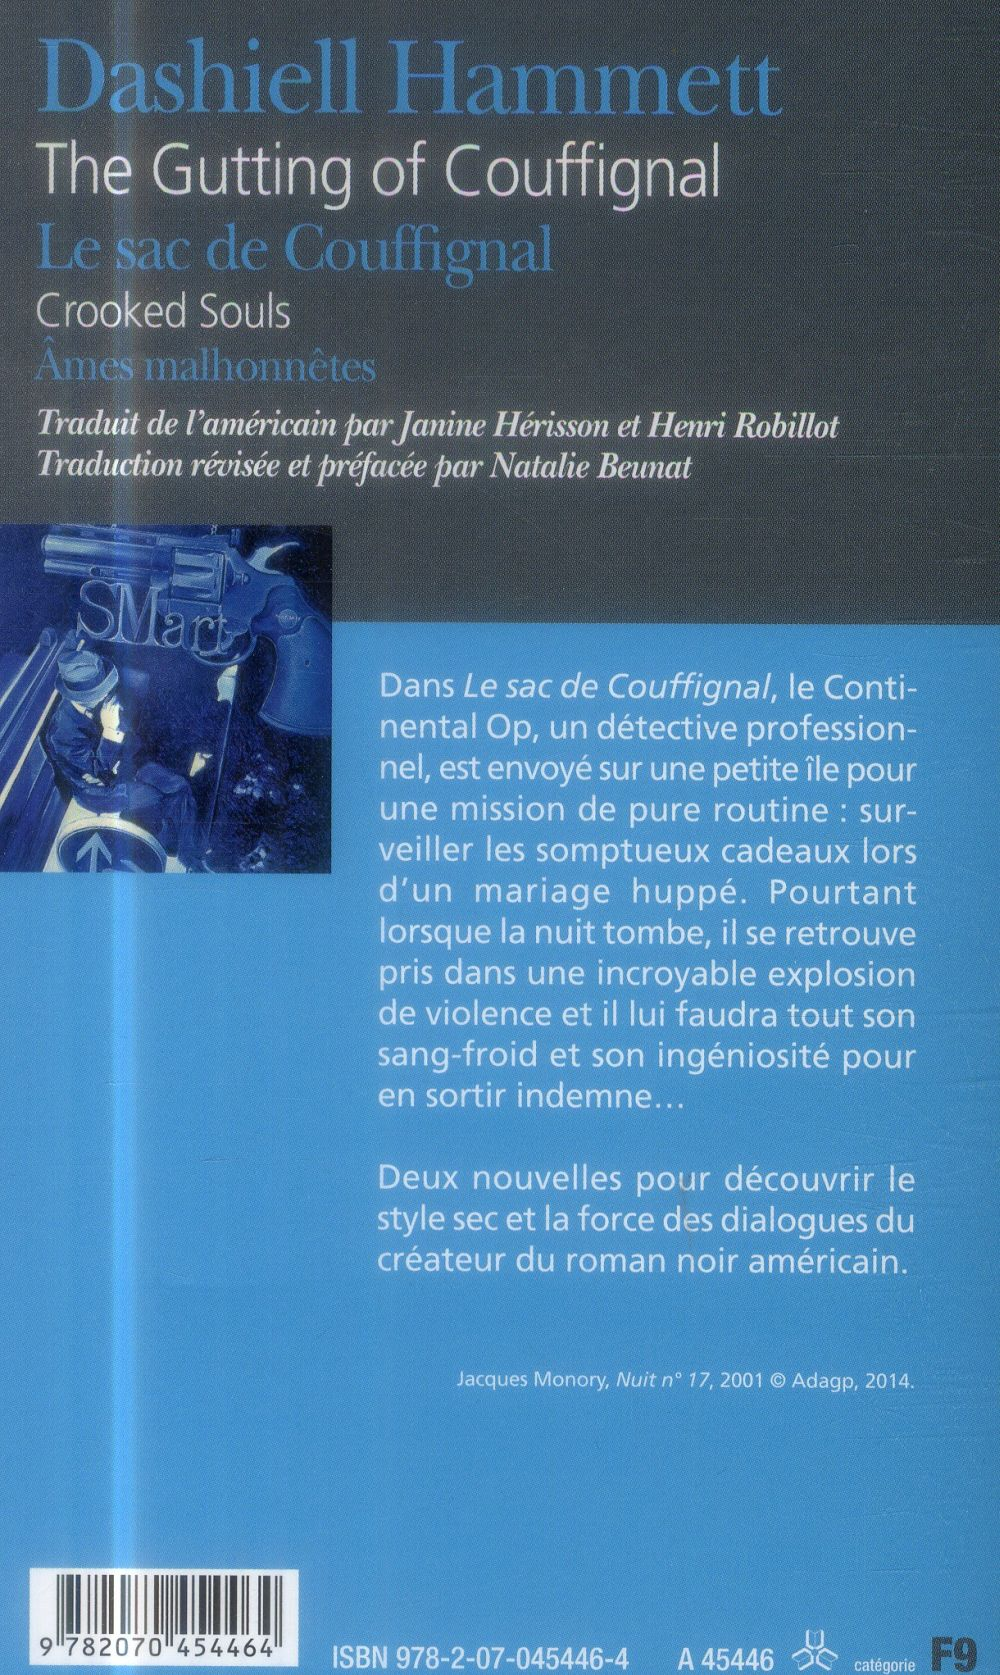 Le sac de couffignal / the gutting of couffingnal